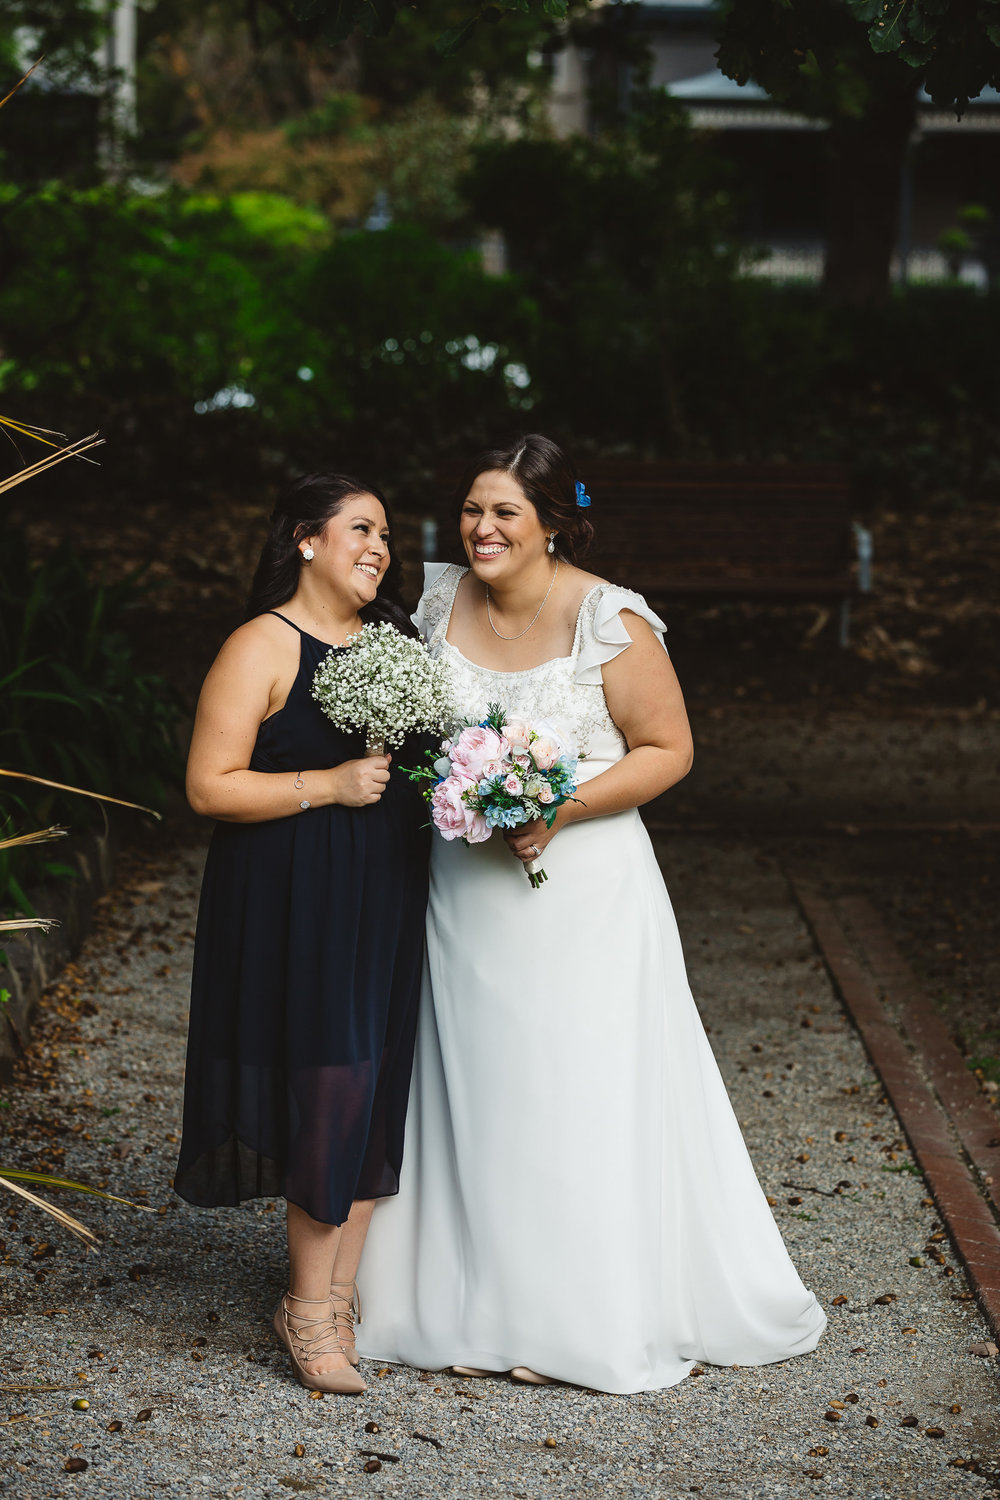 Melbourne-Wedding-Photographer-1085.jpg